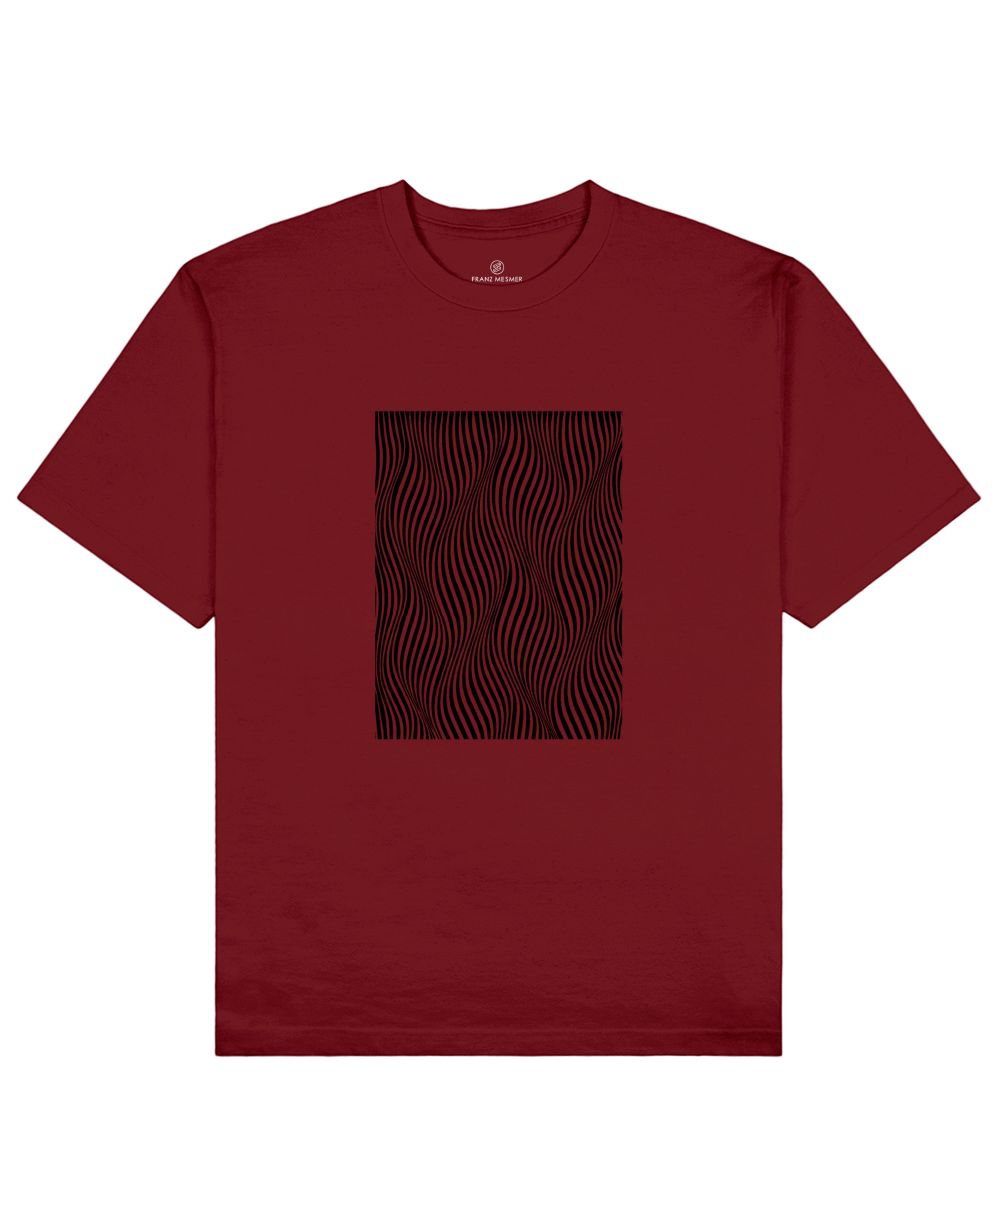 Optical Wave Illusion Print T-Shirt in Red - T-Shirts - Franz Mesmer - BRANMA